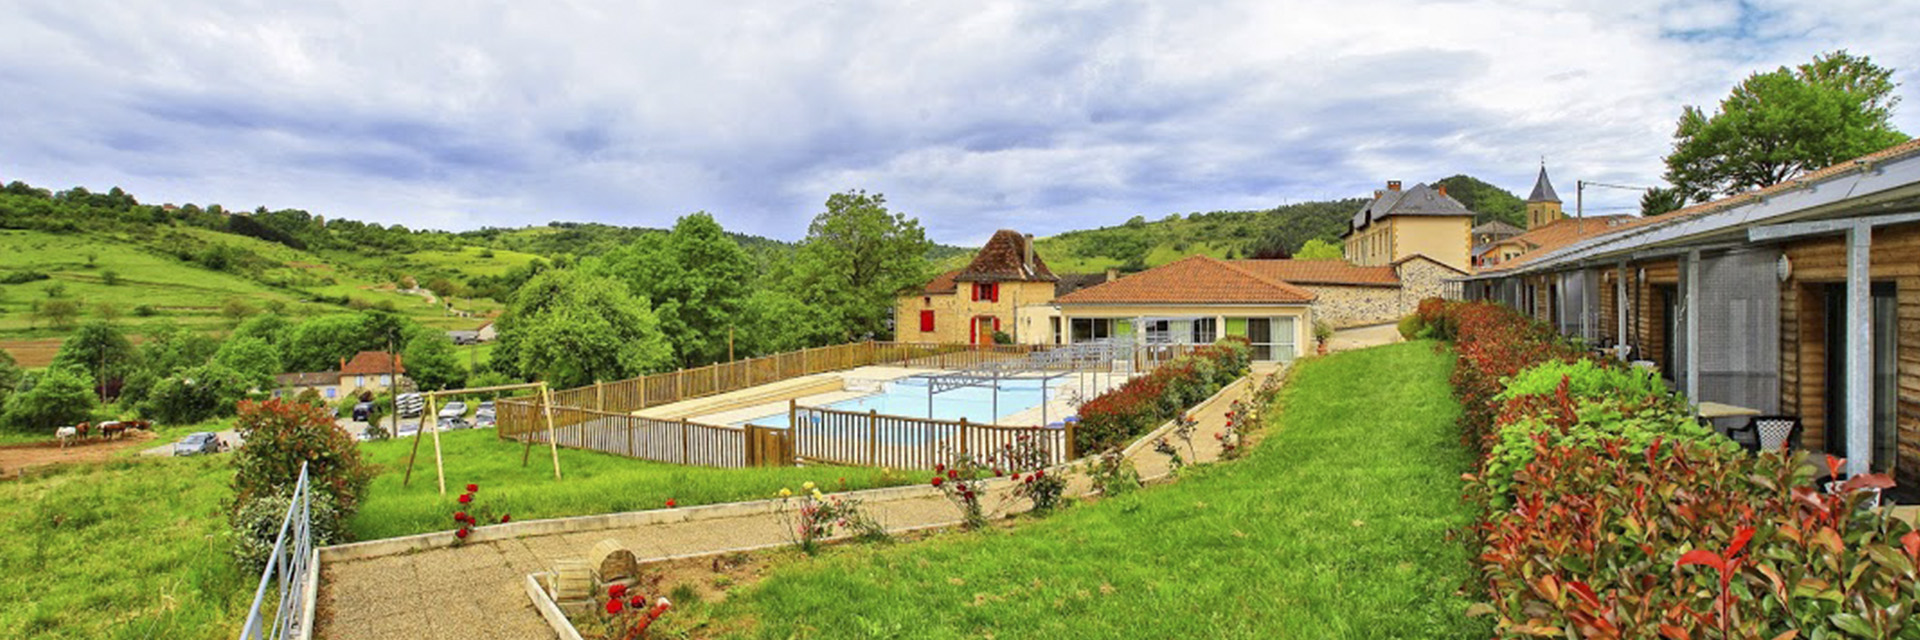 village-vacances-terrou-panorama-piscine